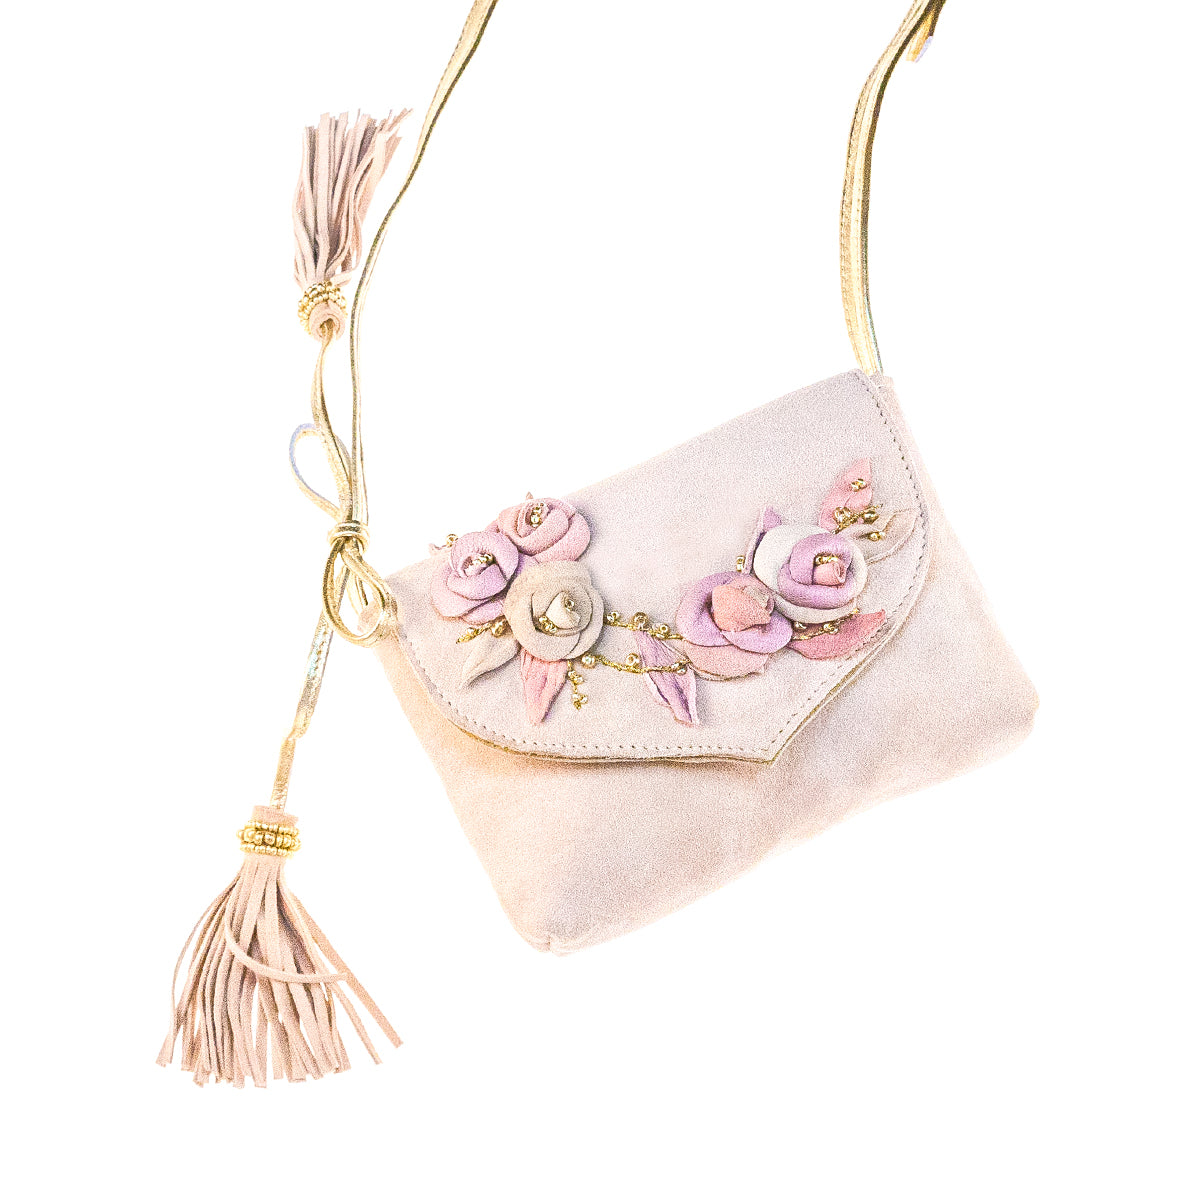 Vibys-Mini-Bag-Briar-Rose-front-view